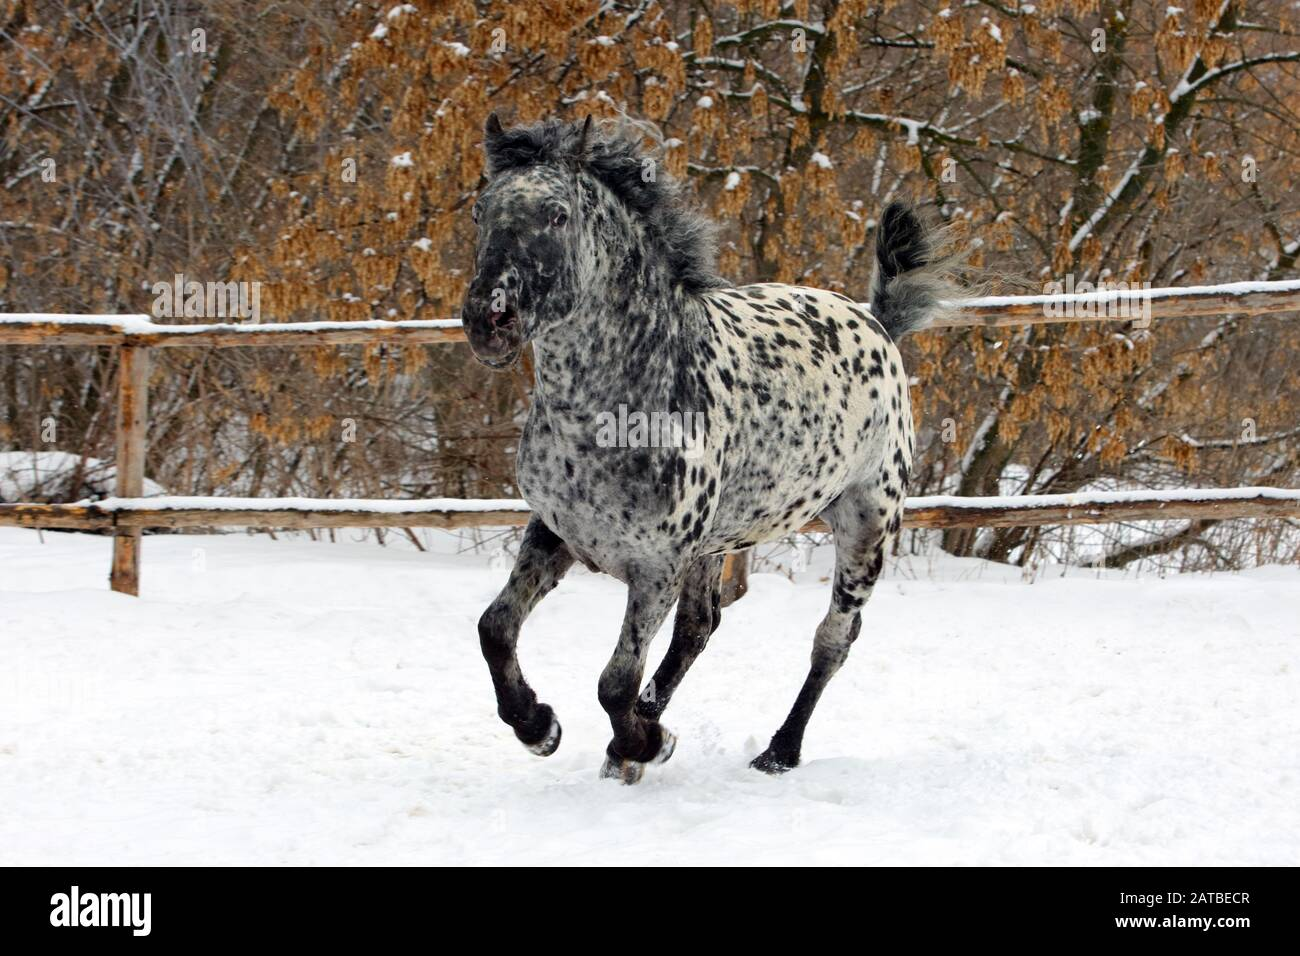 Curly Rare Spotted Horse Breed Galloping In Winter Ranch Stock Photo Alamy